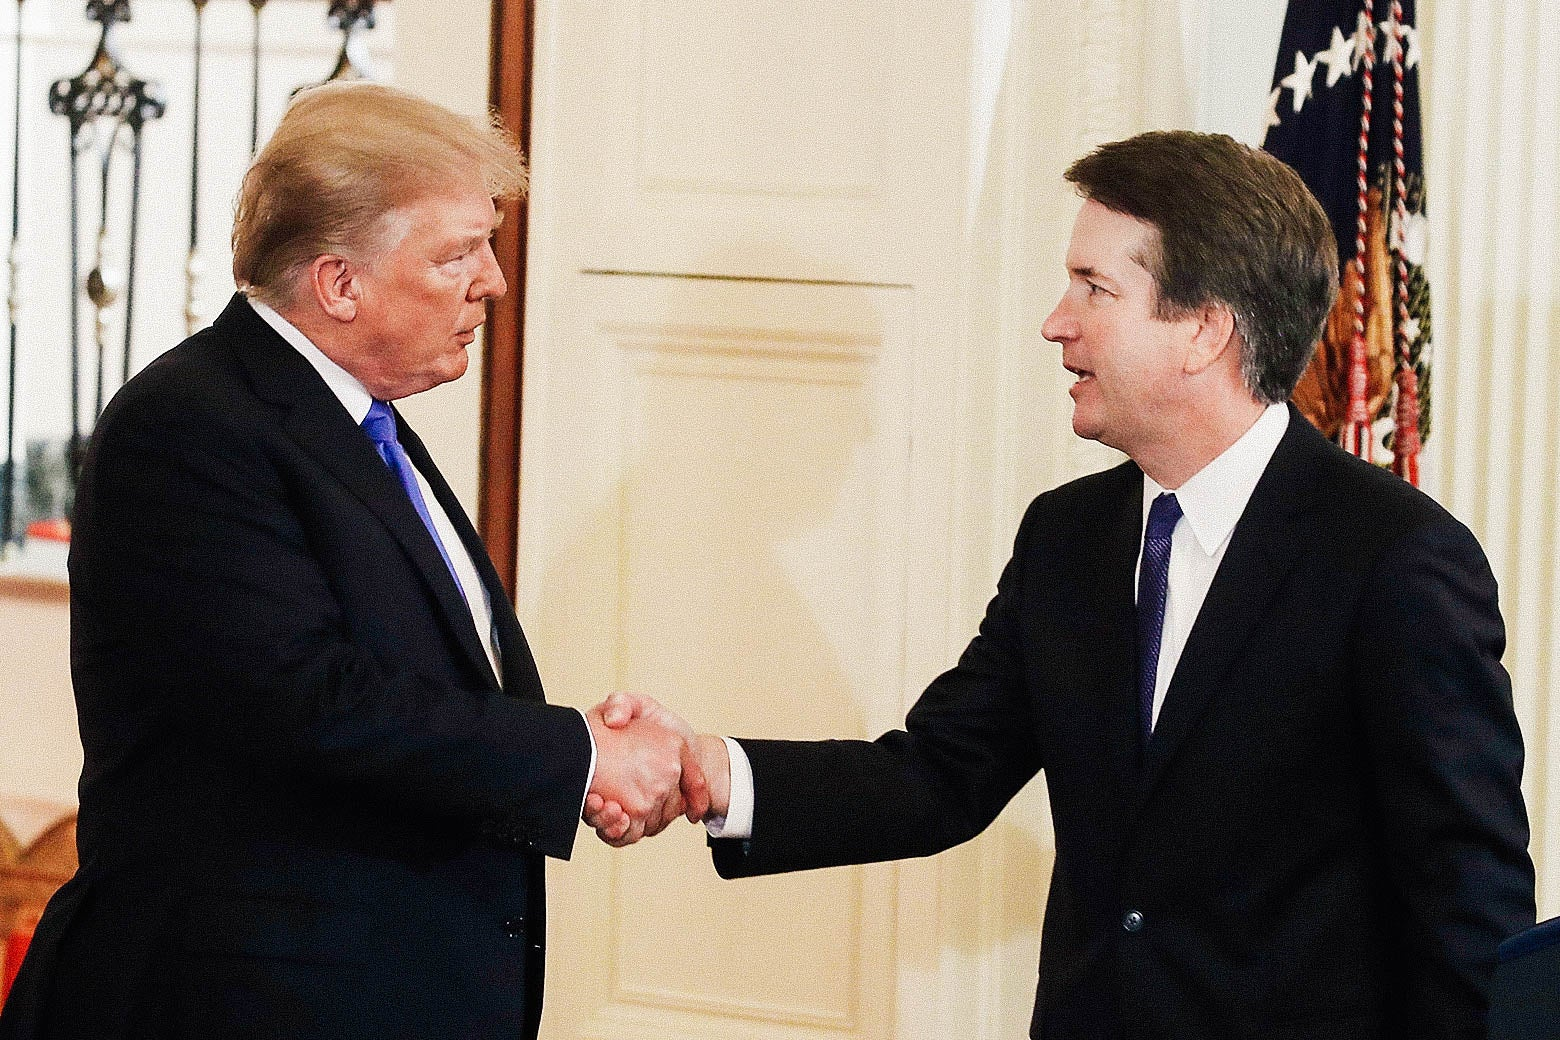 President Donald Trump introduces Judge Brett M. Kavanaugh.